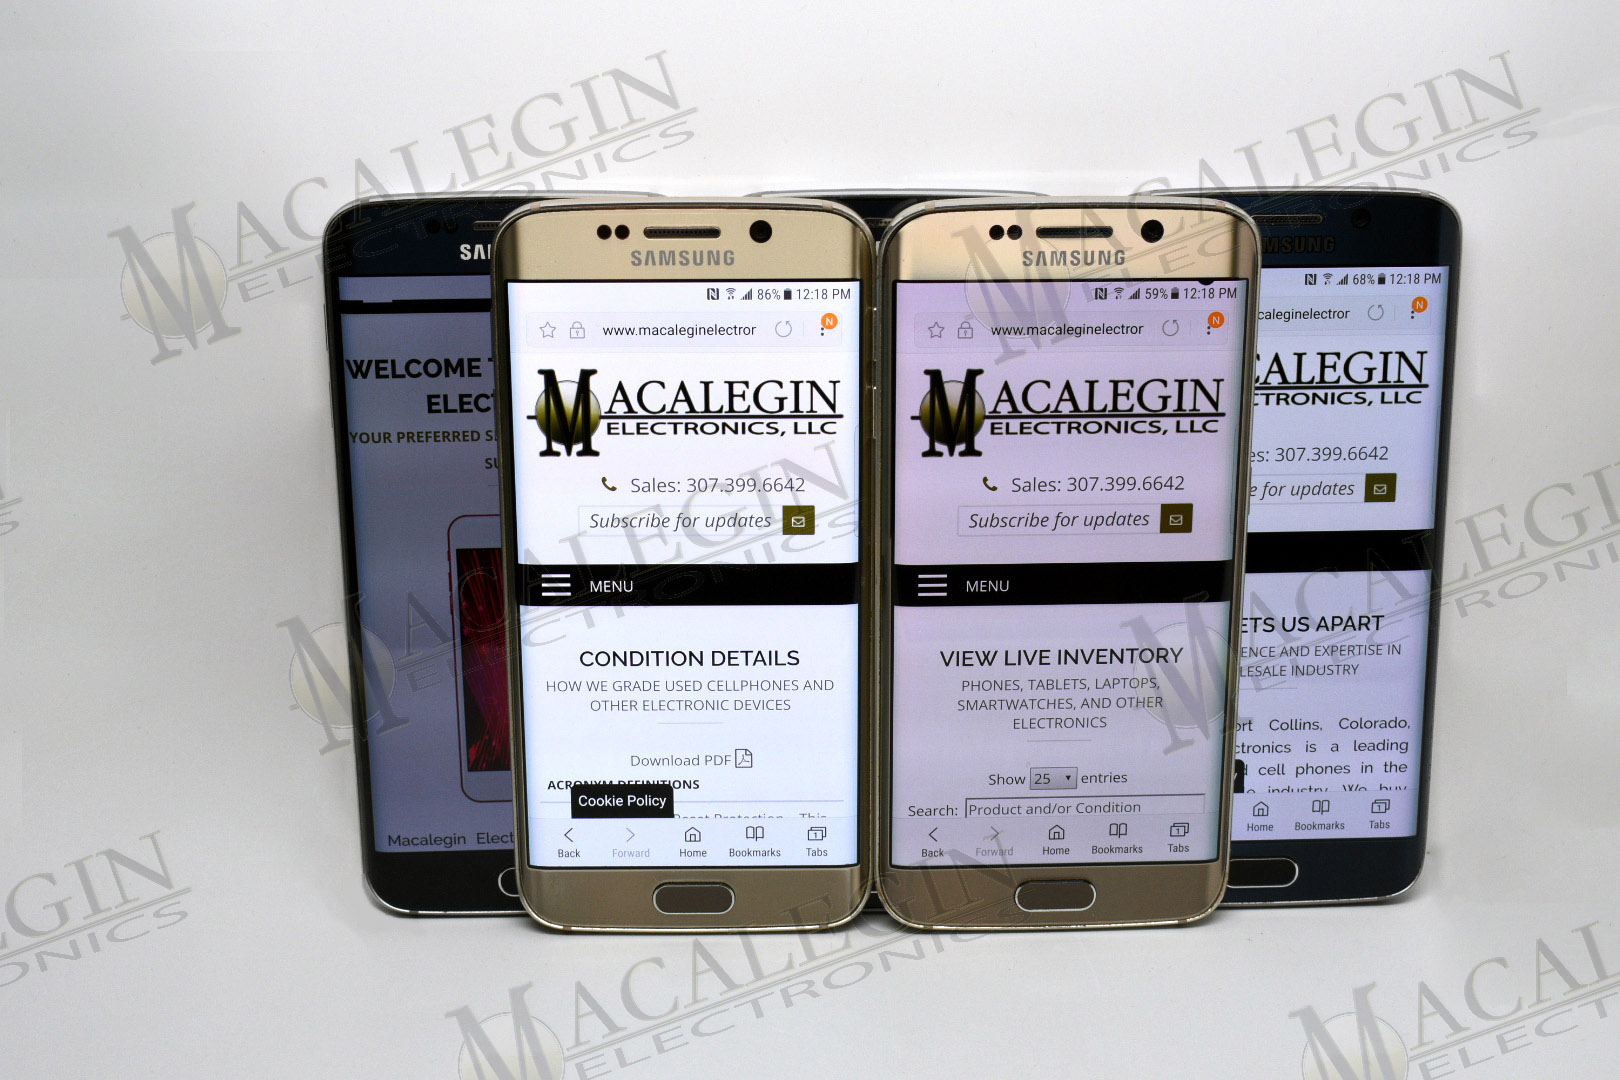 Used SAMSUNG SM-G925A GALAXY S6 EDGE UNLOCKED in PFL condition for sale from Macalegin Electronics at $82 a piece.